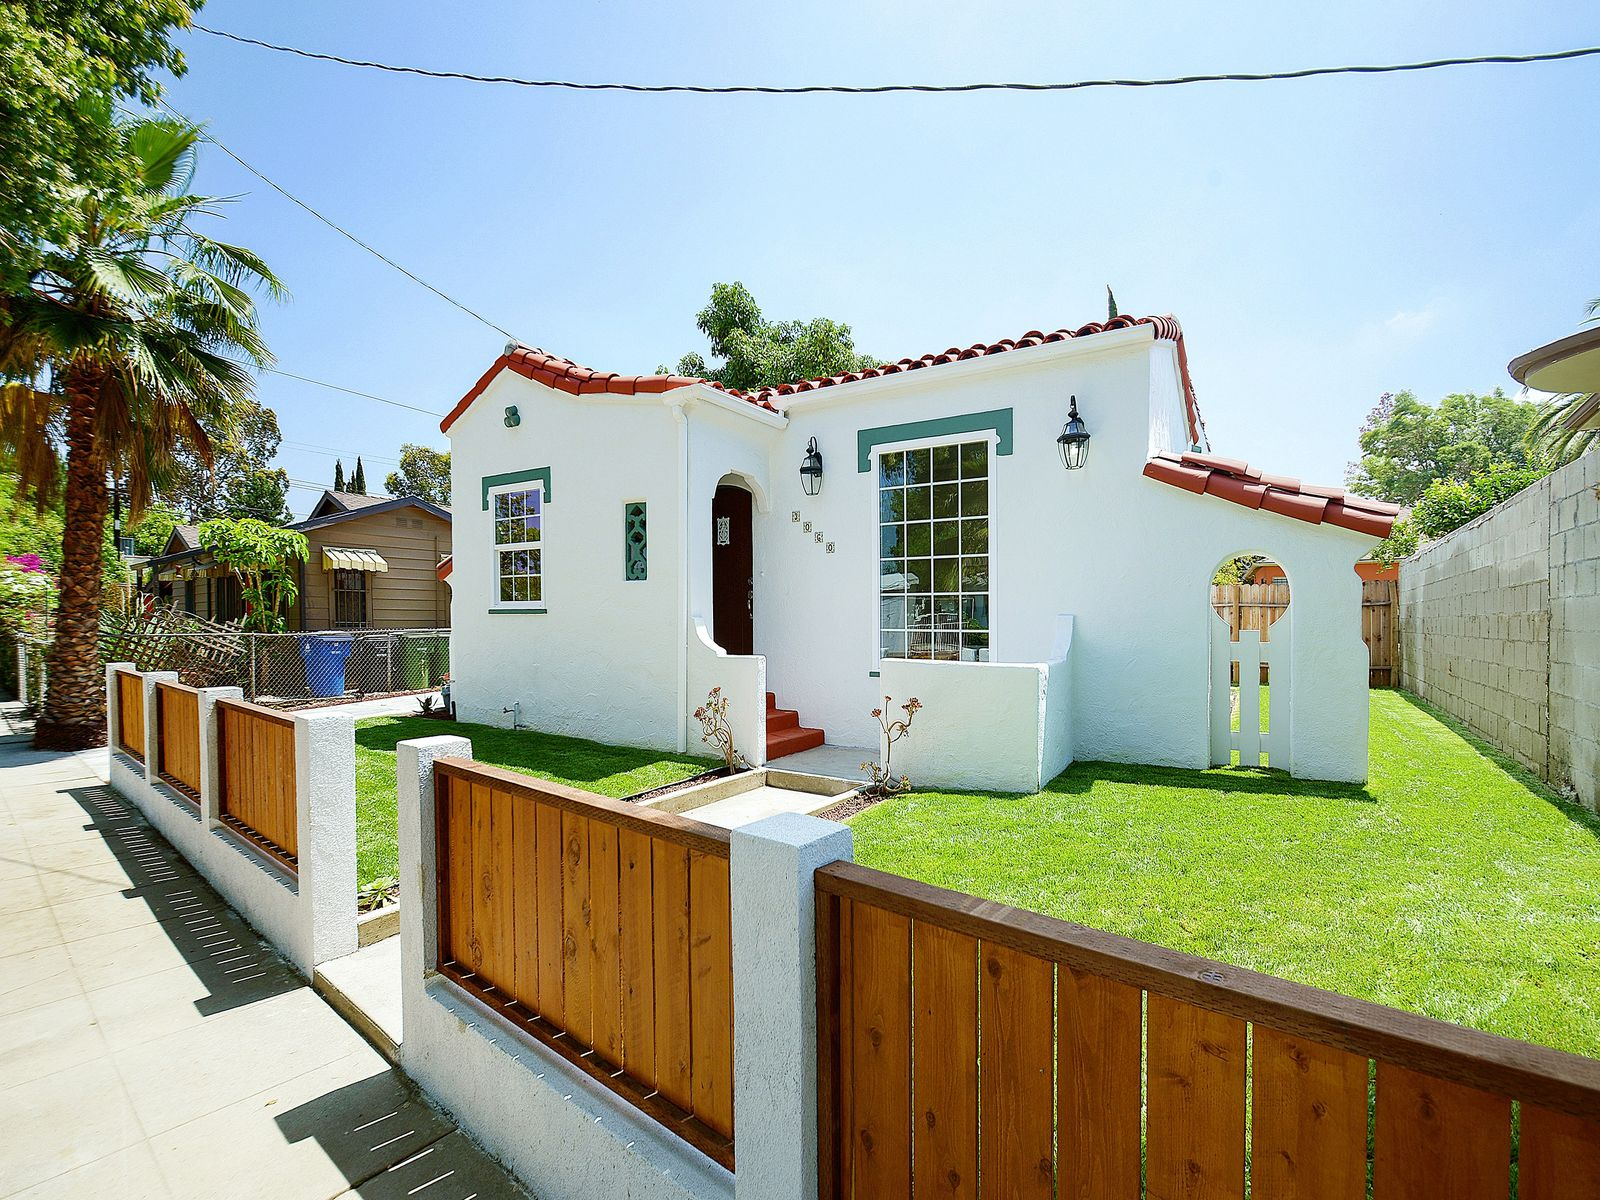 3060 Silver Lake Blvd., Los Angeles CA Single Family Home - Los Angeles Real Estate